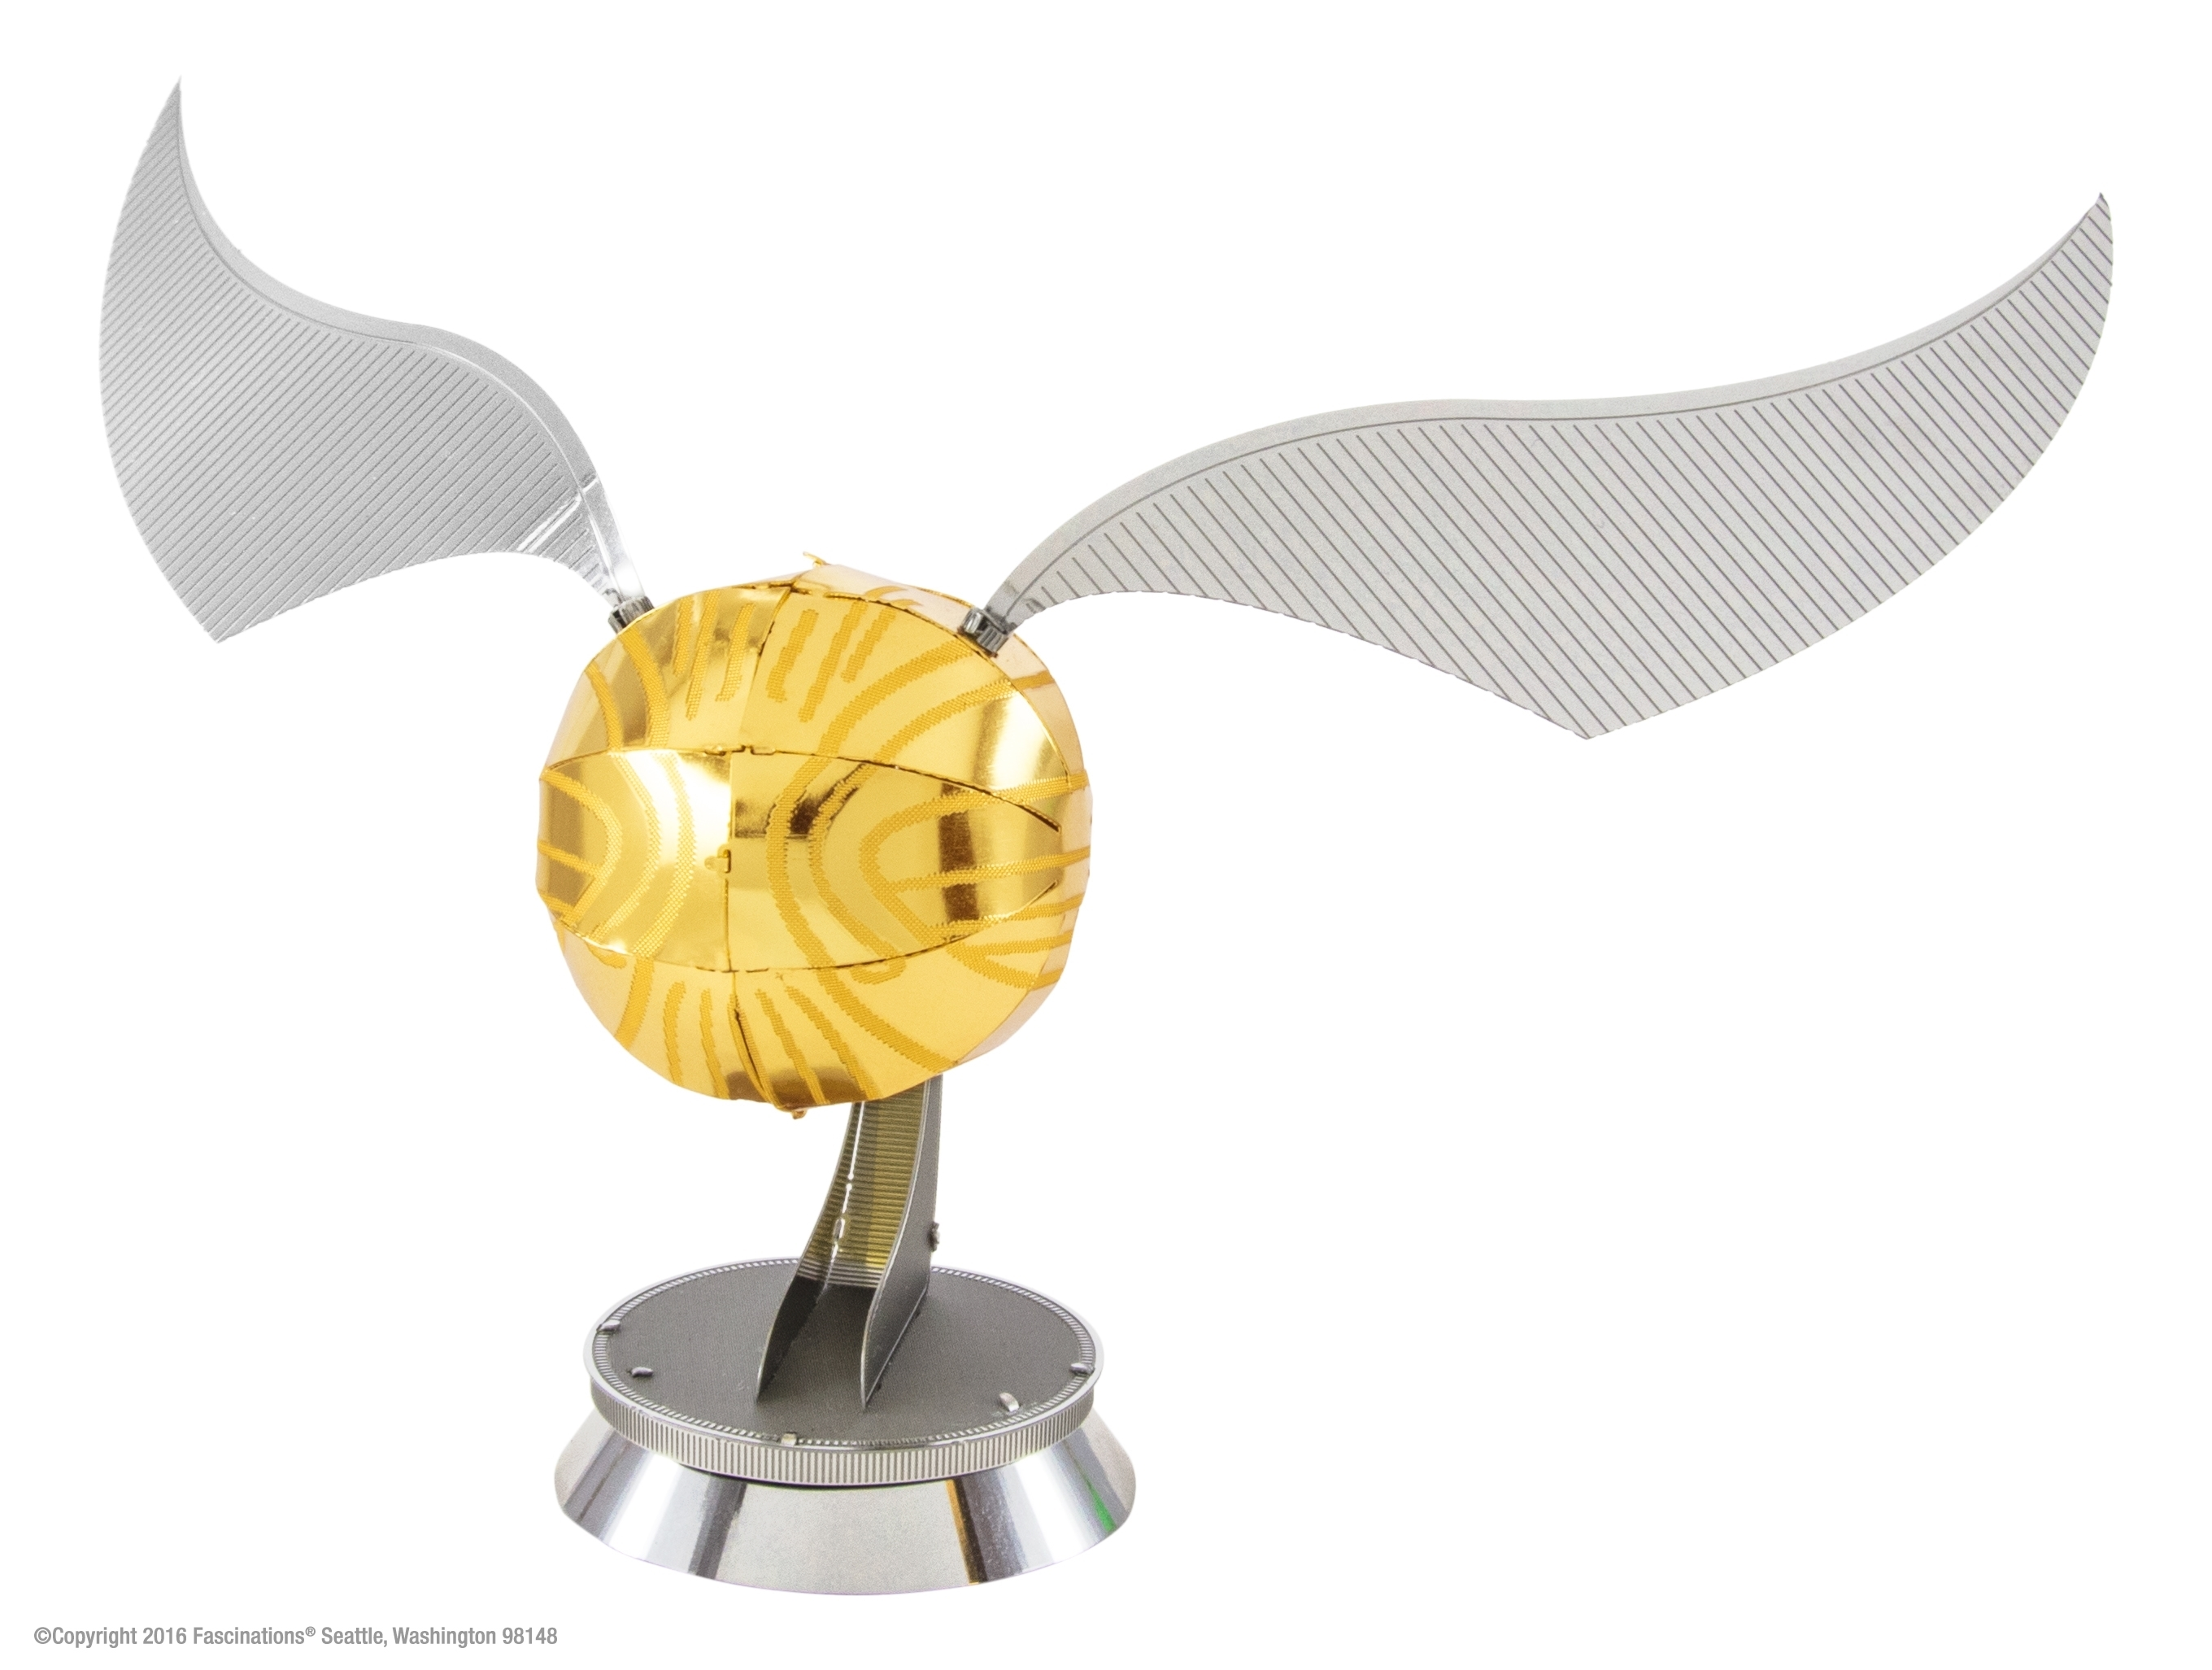 Fascinations Metal Earth 3D Metal Model Kit Harry Potter Golden Snitch by Fascinations